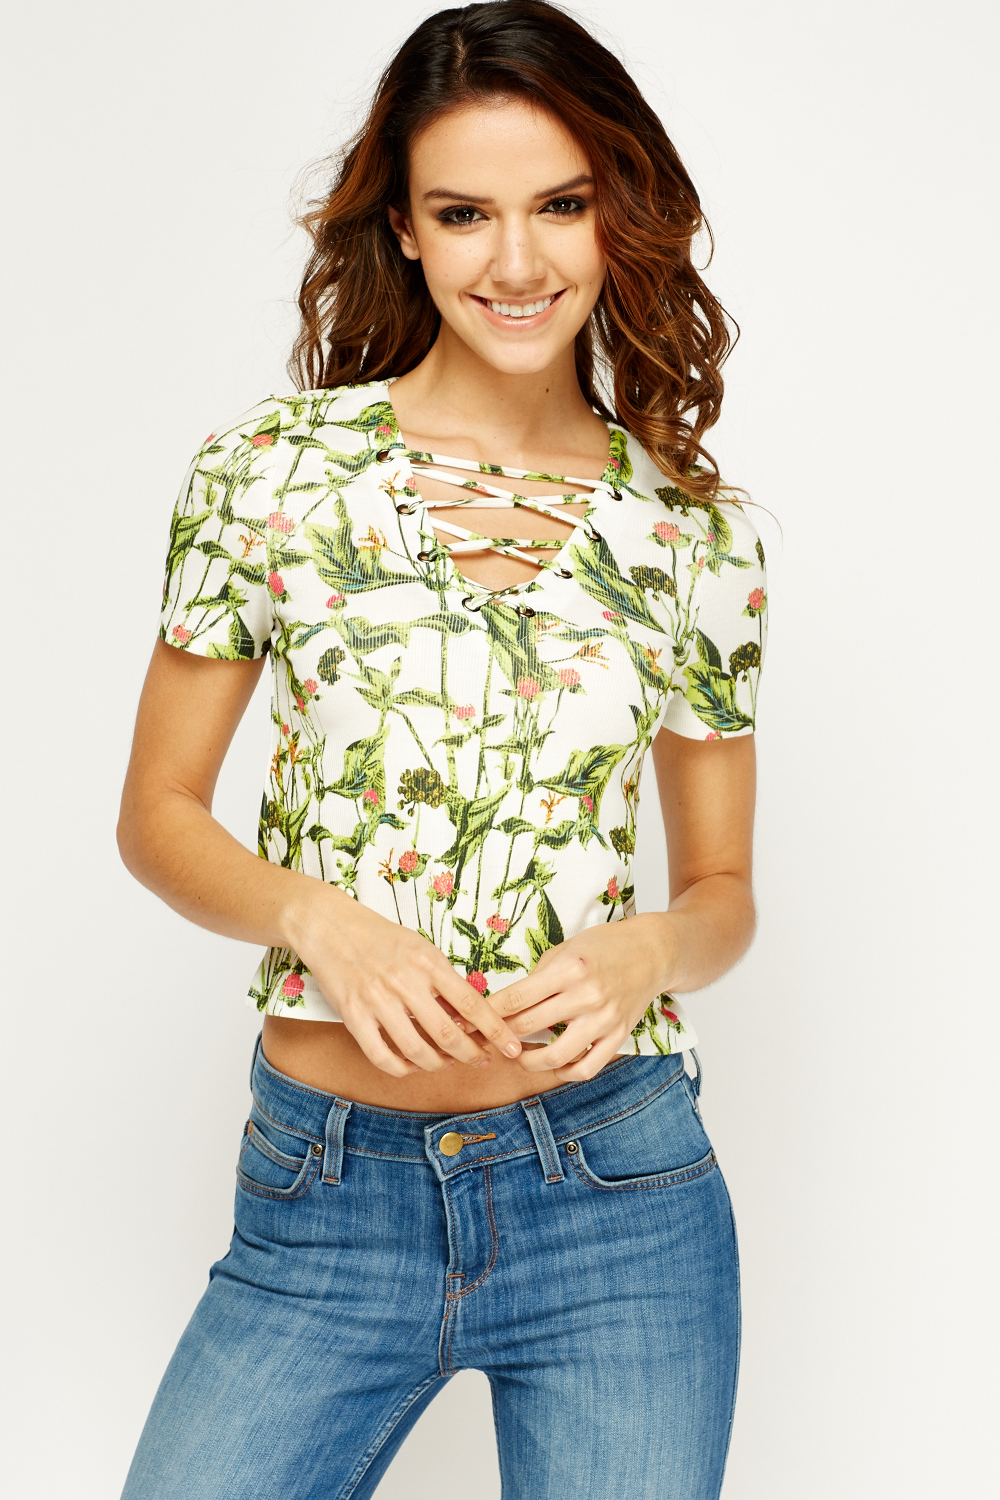 Criss Cross Printed Crop Top White Green Just 163 5